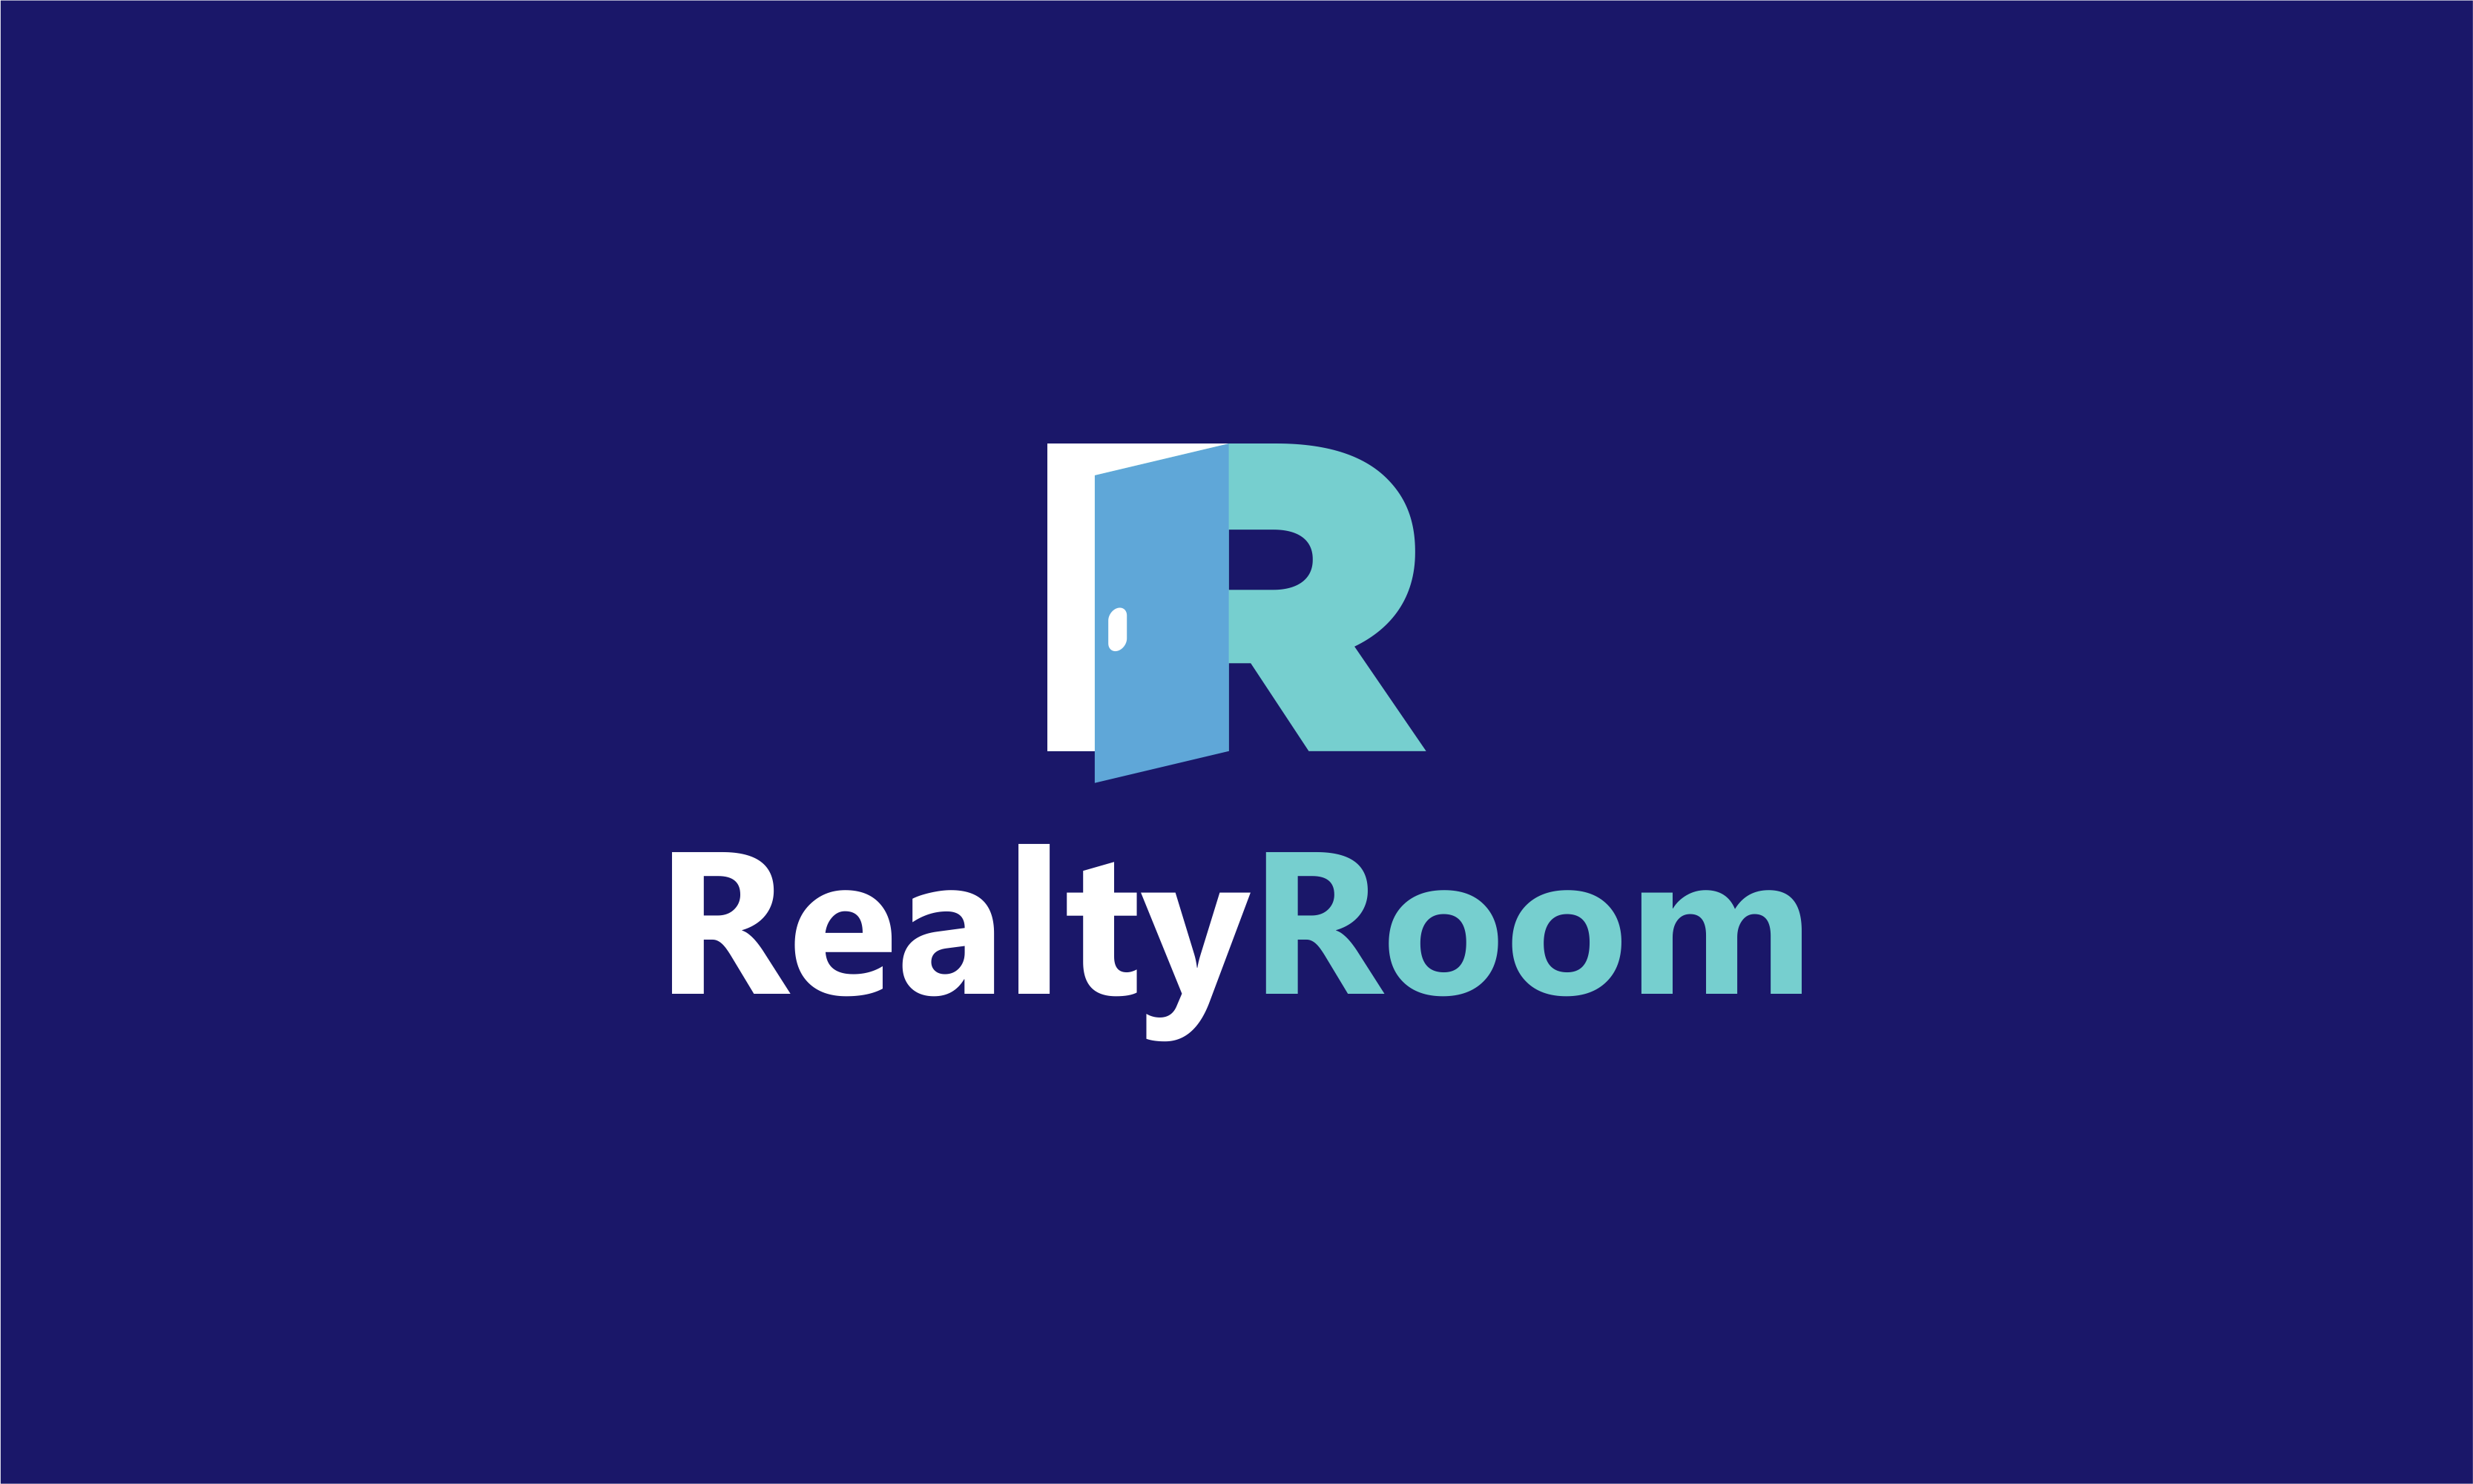 Realtyroom - Real estate company name for sale